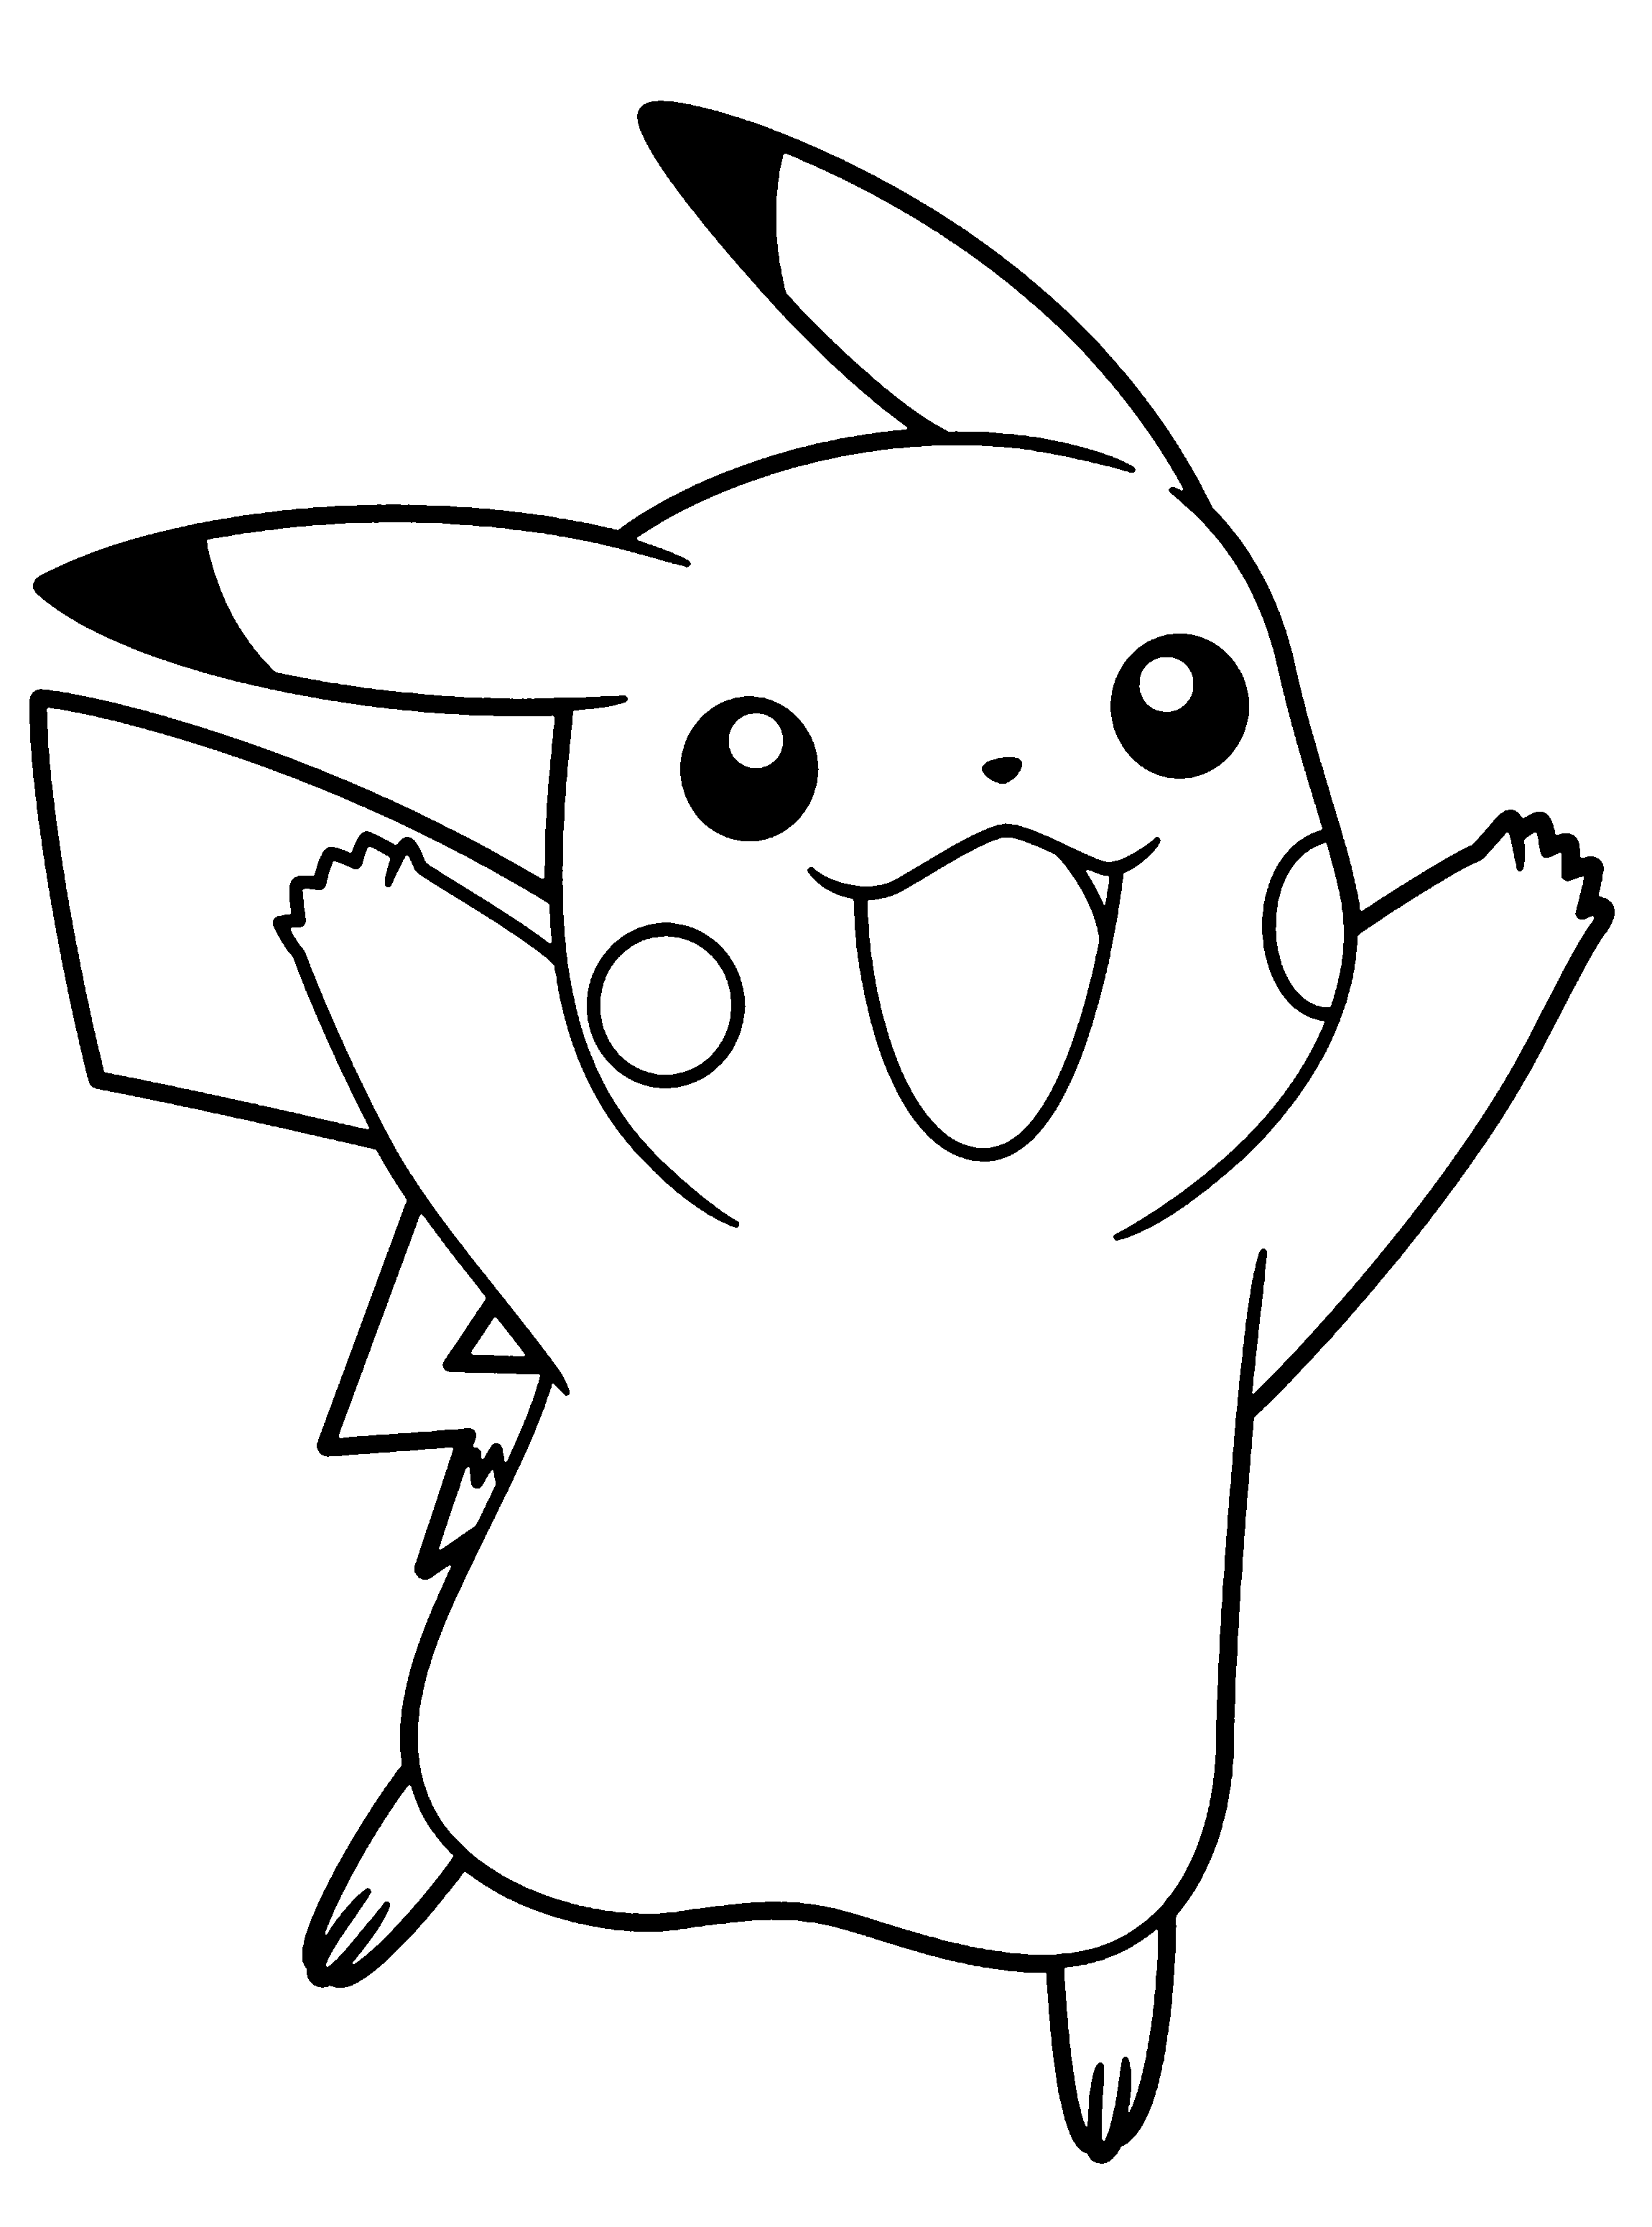 Colouring Pictures : 13 printable pikachu coloring pages Print Color Craft